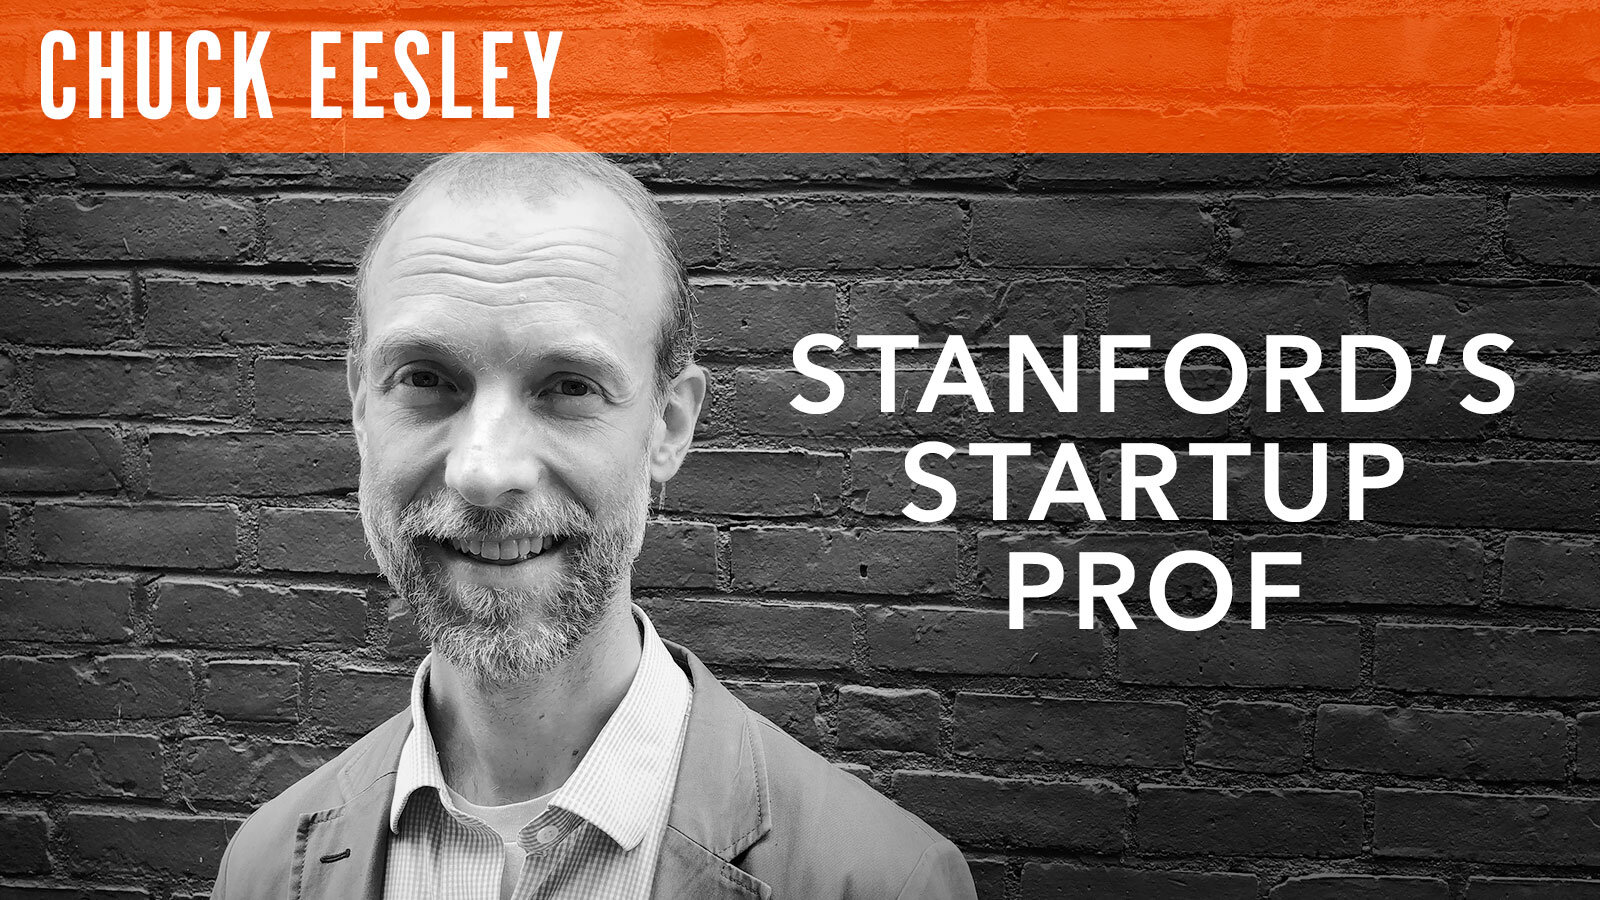 Chuck Eesley  Stanford's Startup Prof